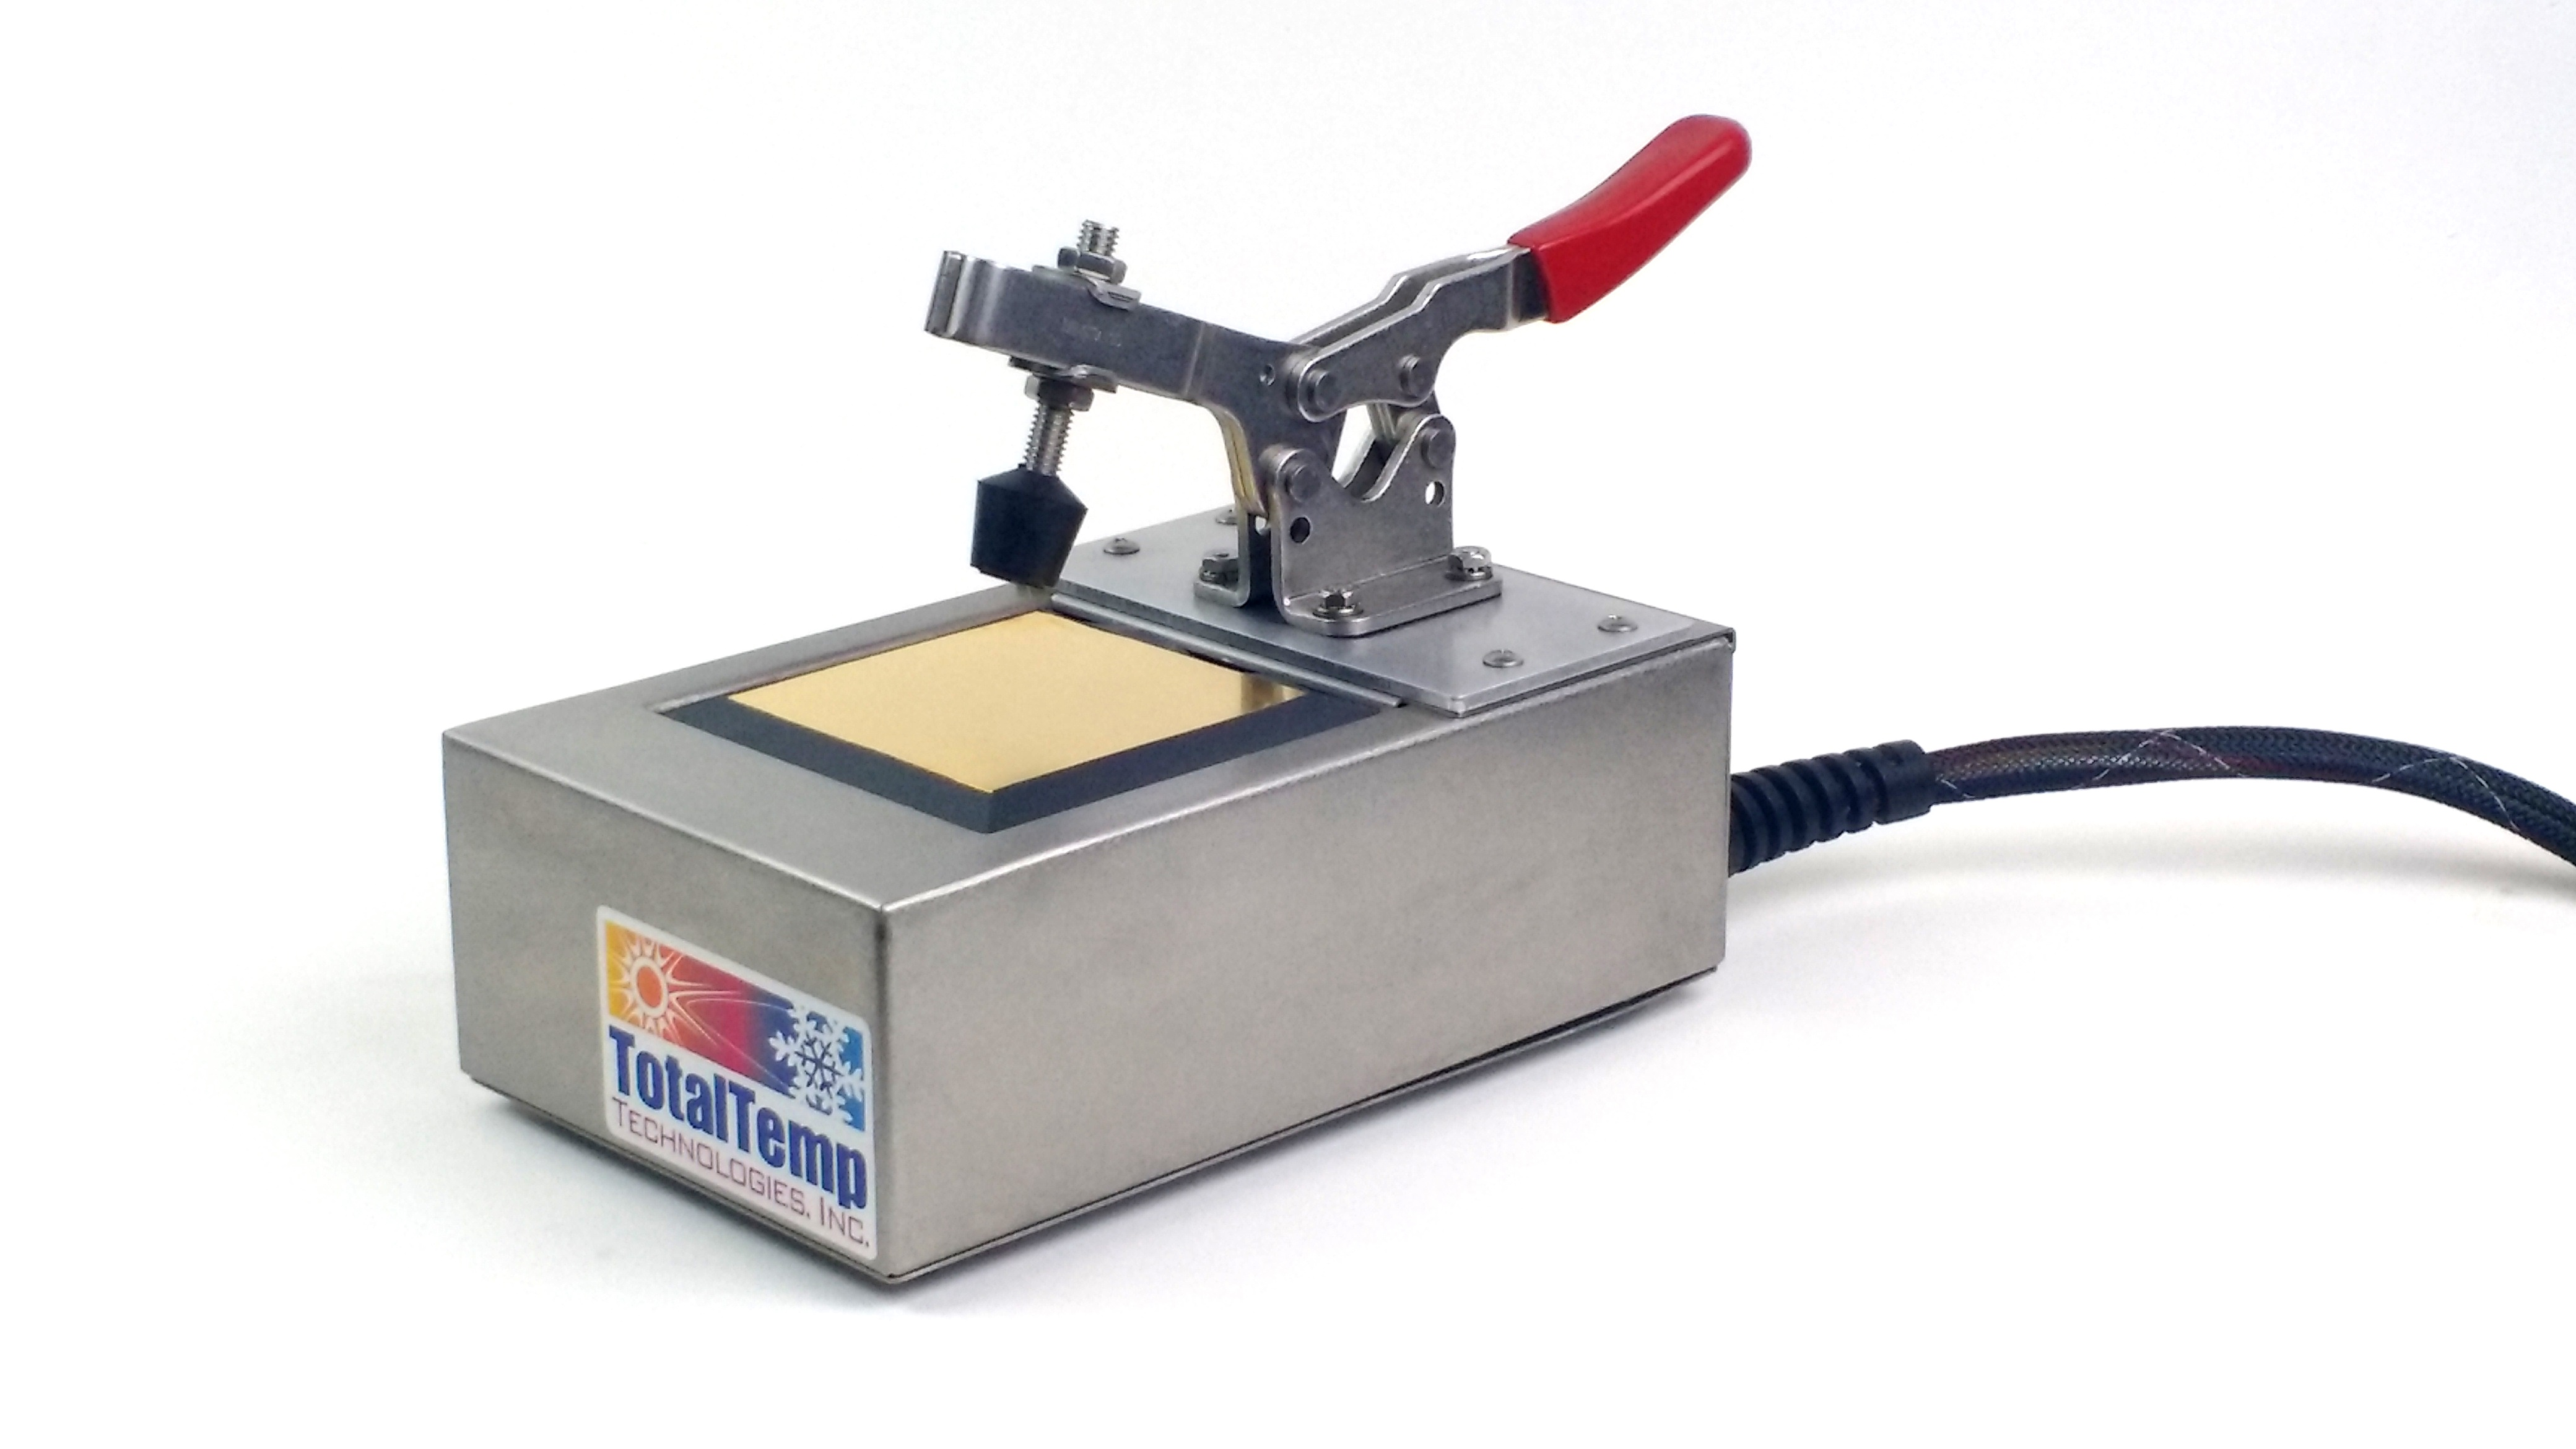 Small Thermal Platform SD14 with a Gold Plated Surface and an Adjustable Toggle Clamp